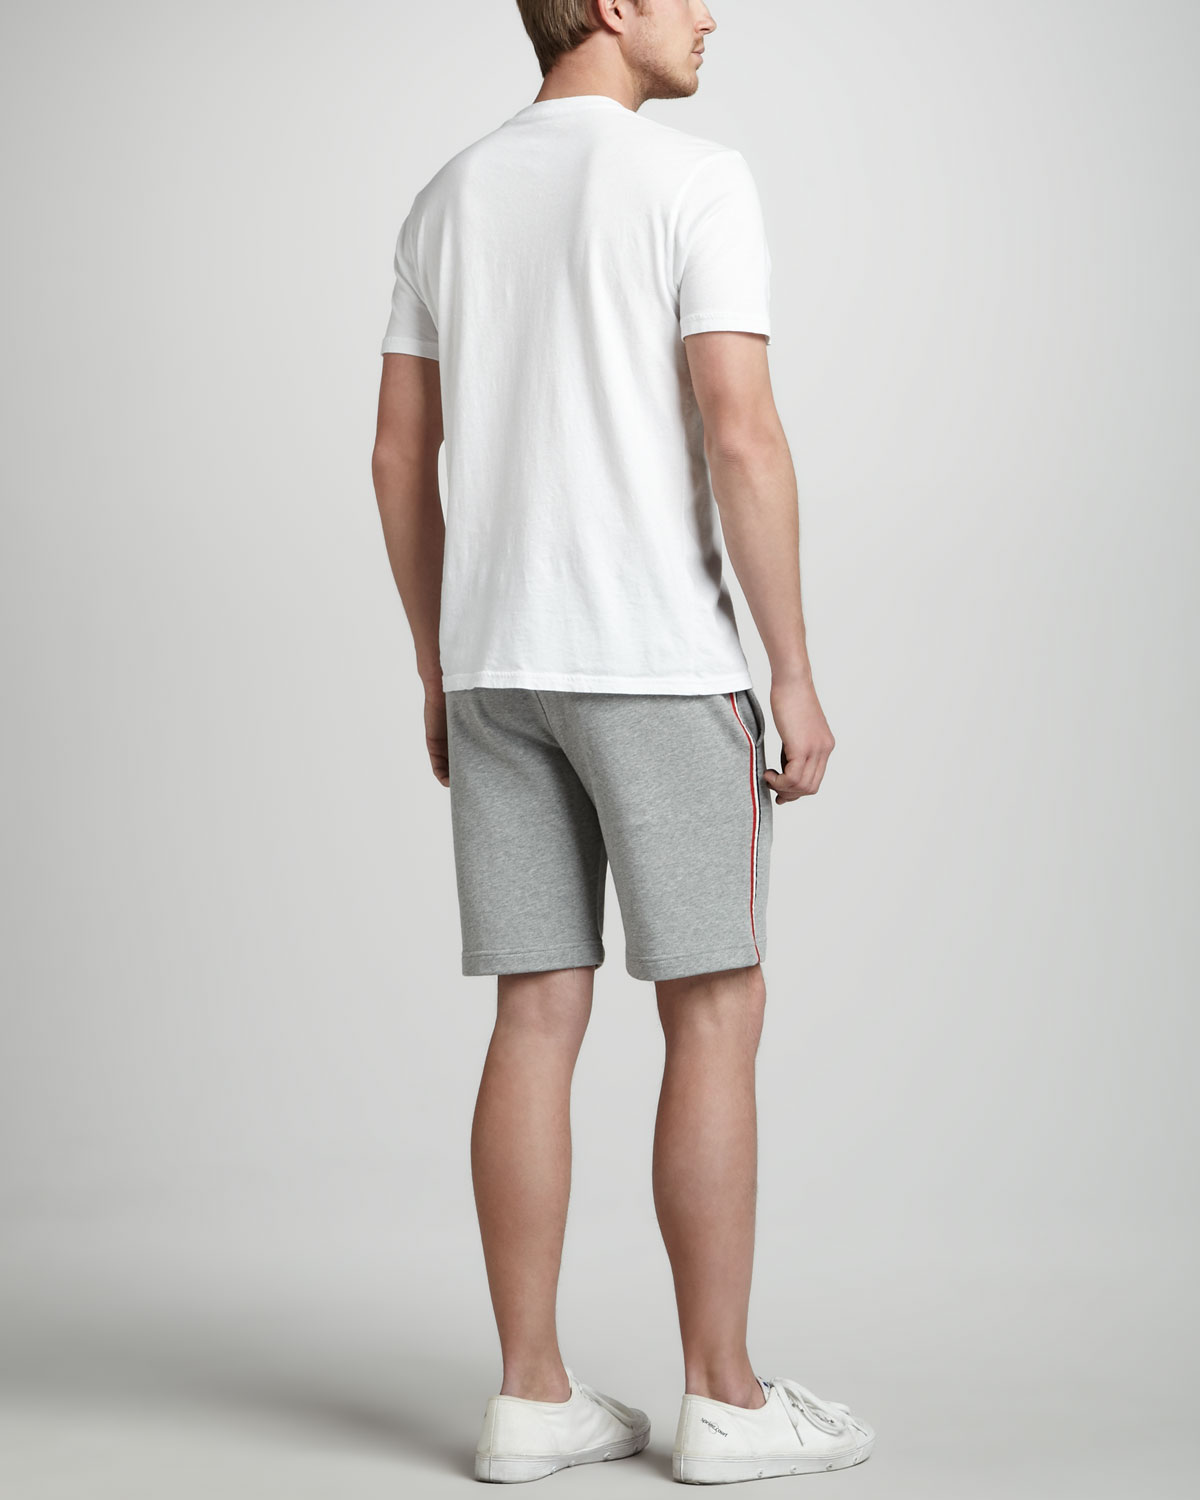 974301aef Lyst - Moncler Flag Trim Sweatshorts in Gray for Men